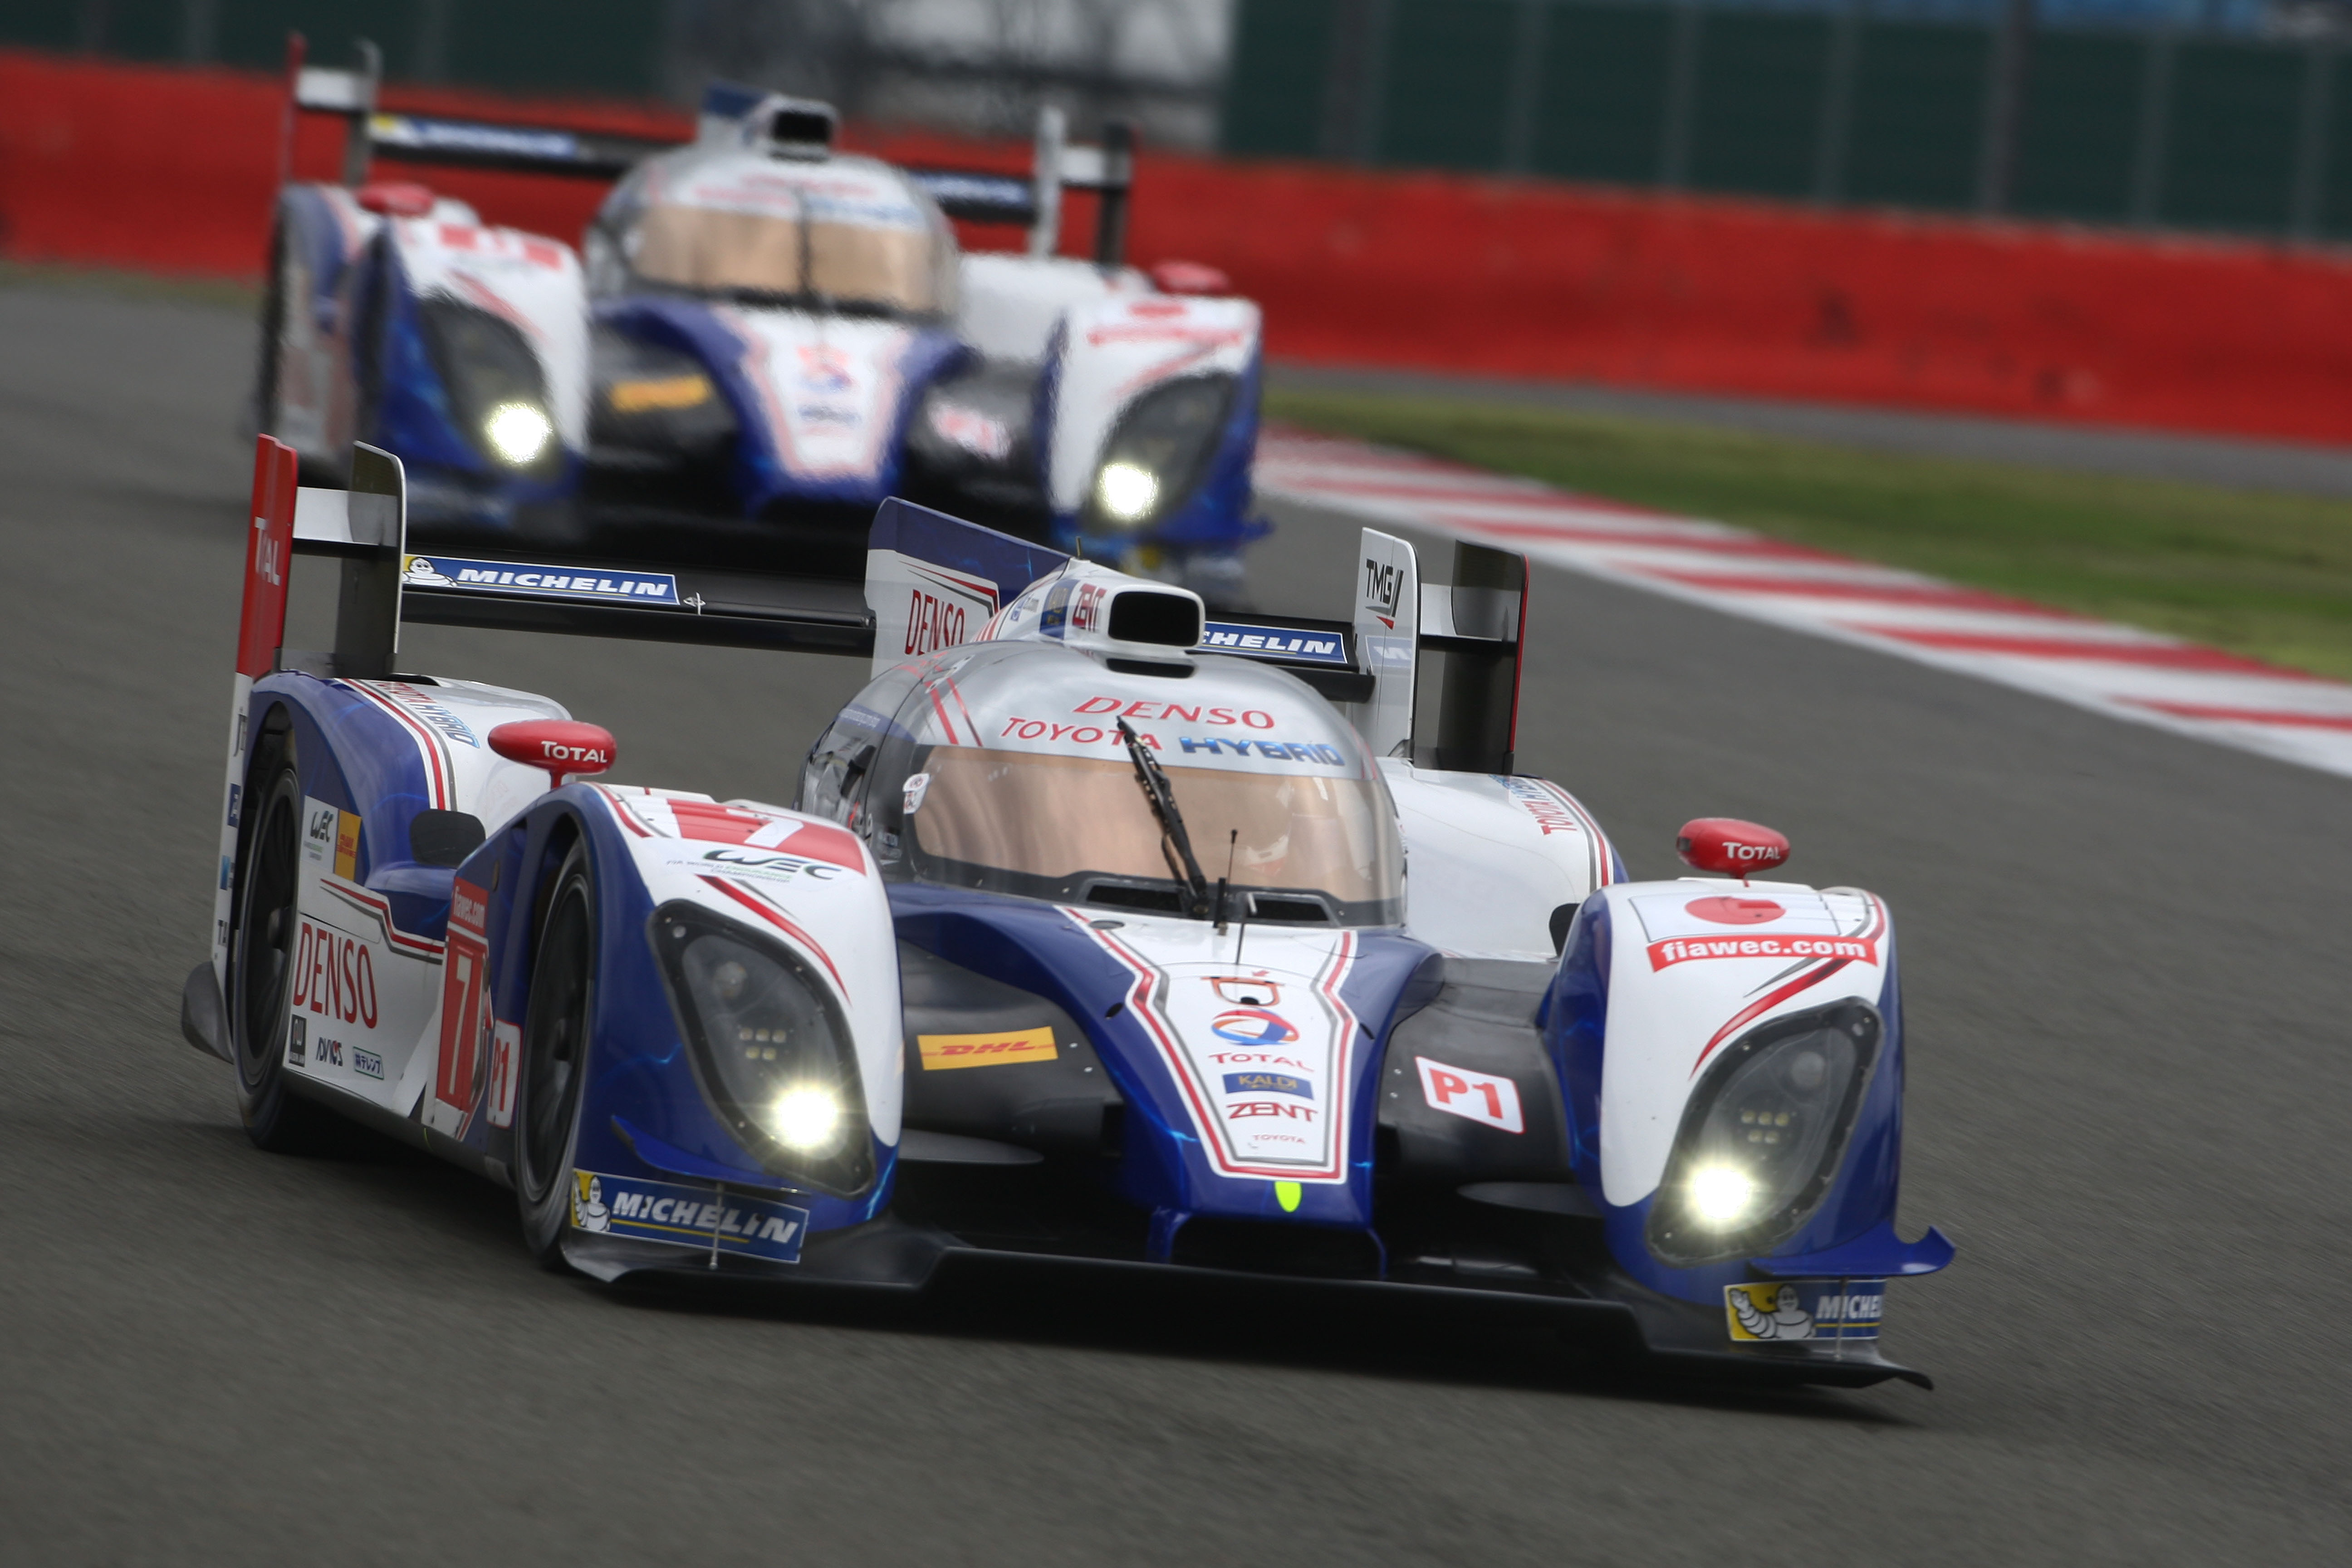 WEC 2013 - 6 Hours of Silverstone